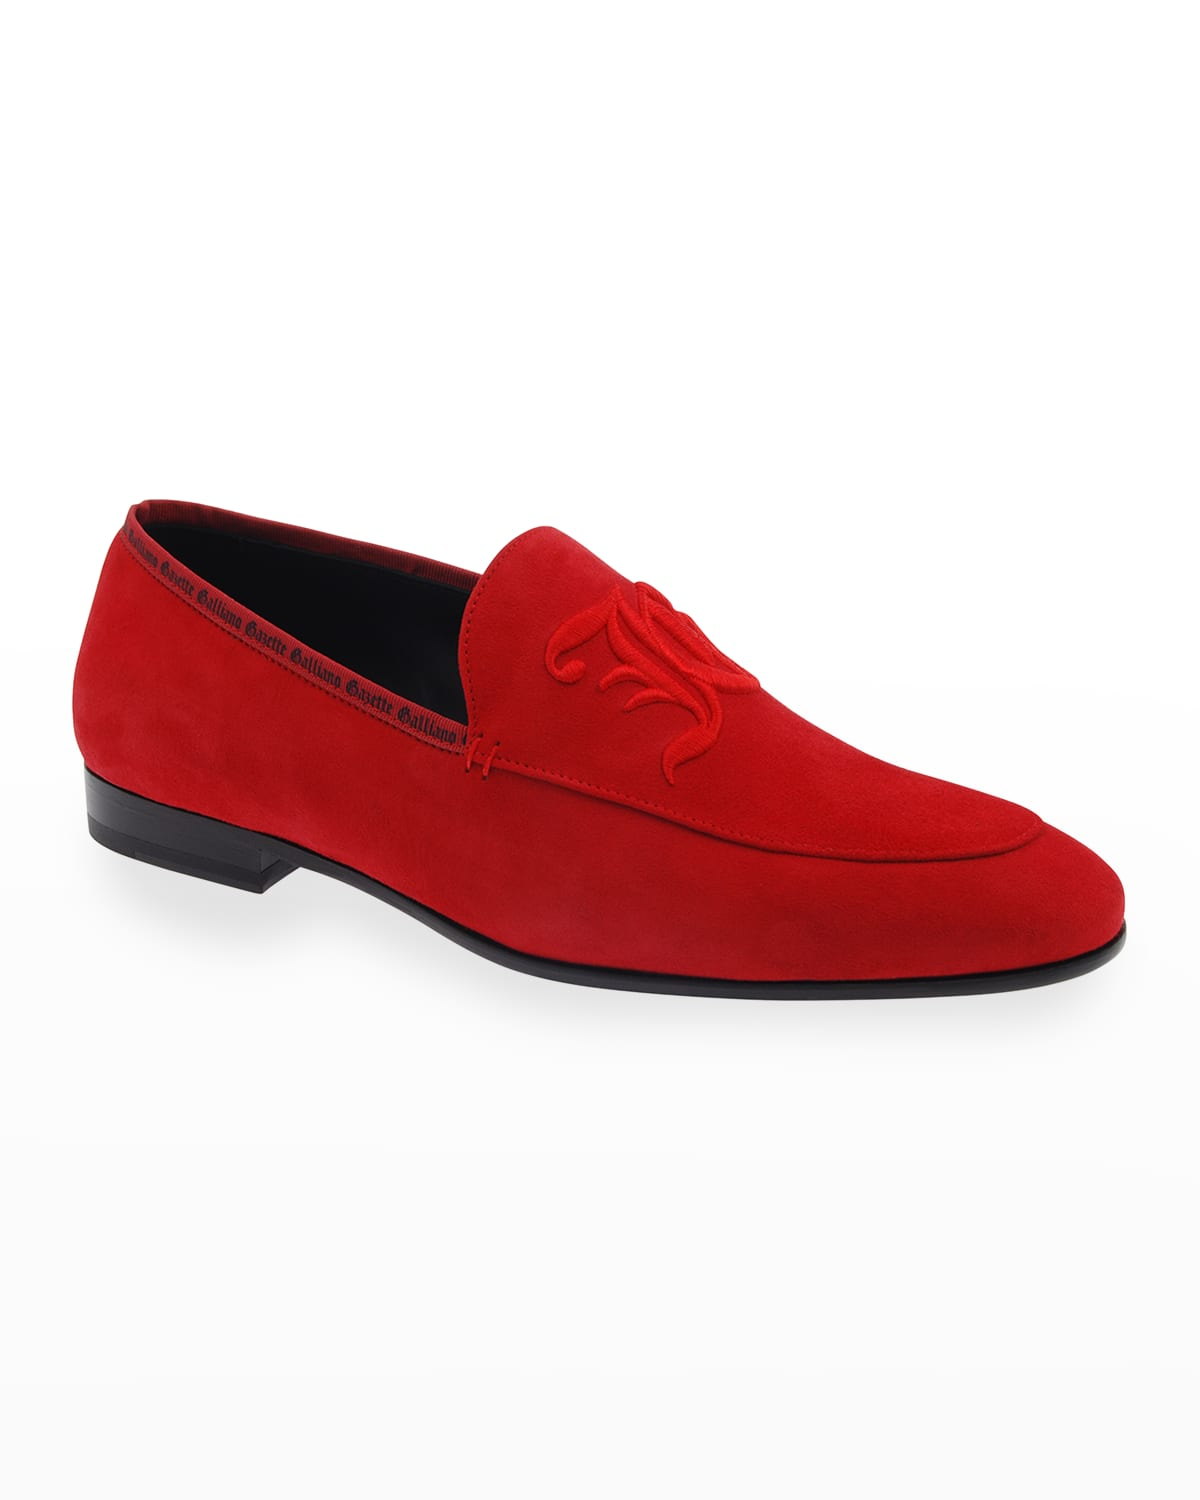 Men's Embroidered Logo Suede Loafers